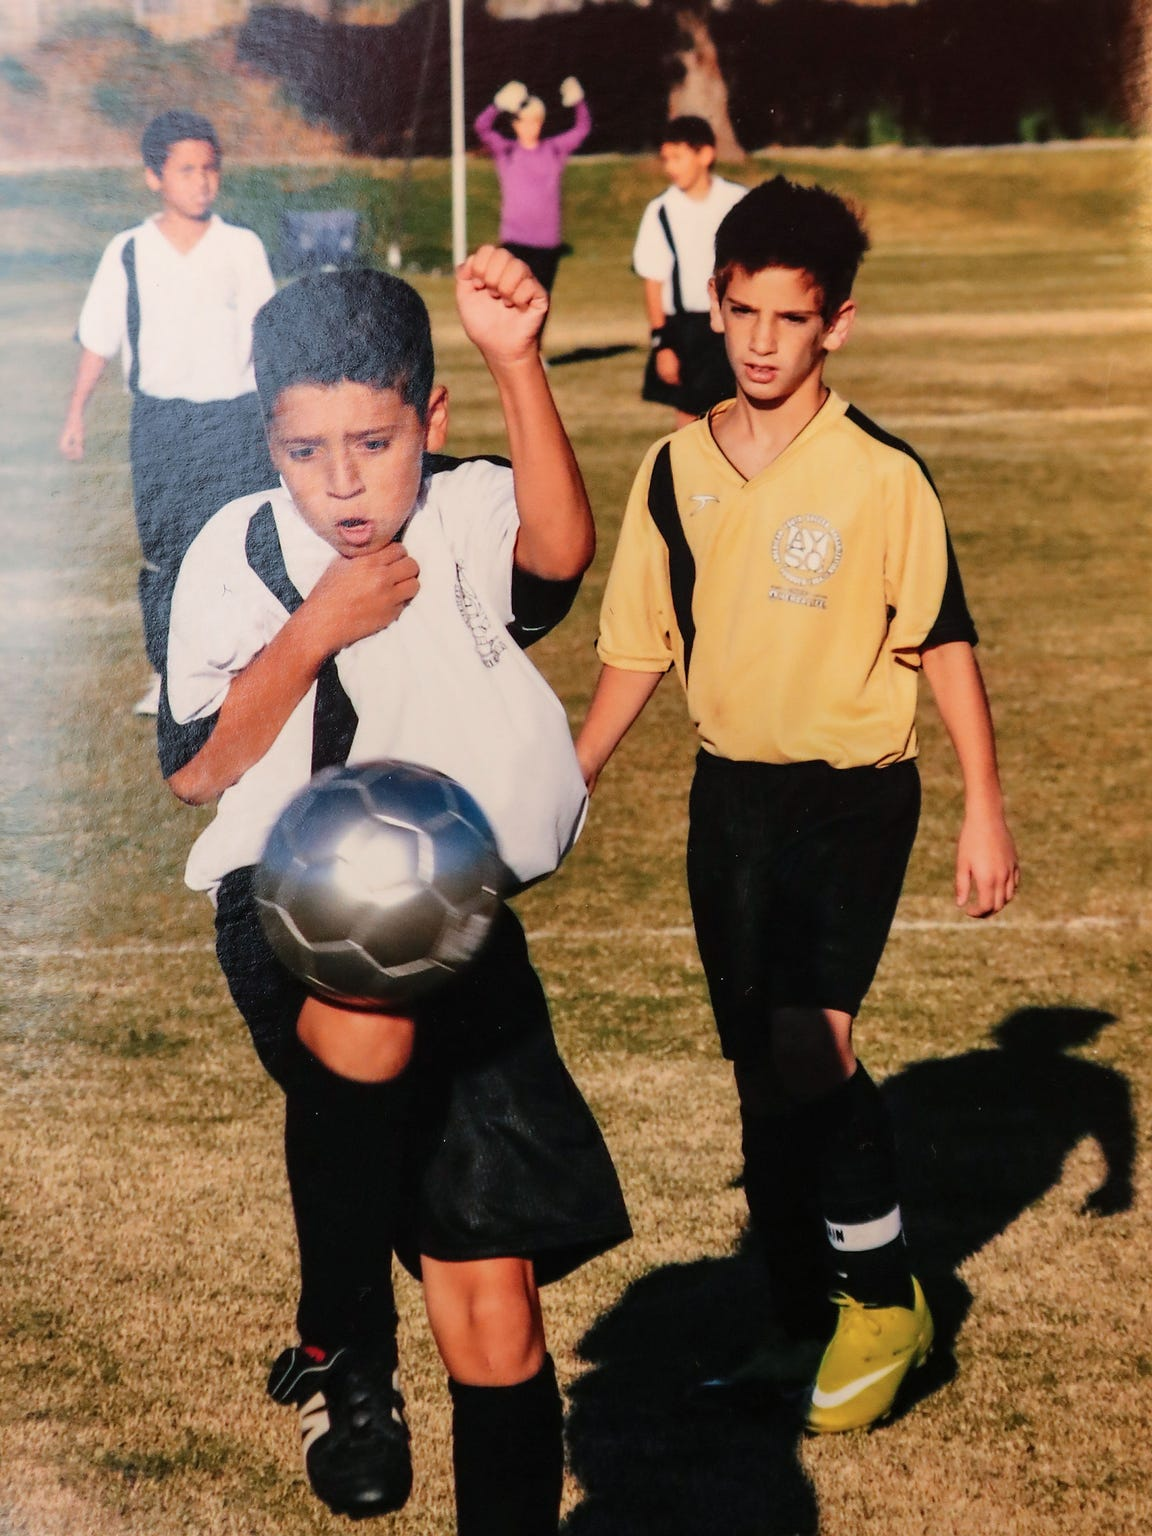 Kevin Salamone, left, started playing soccer in his